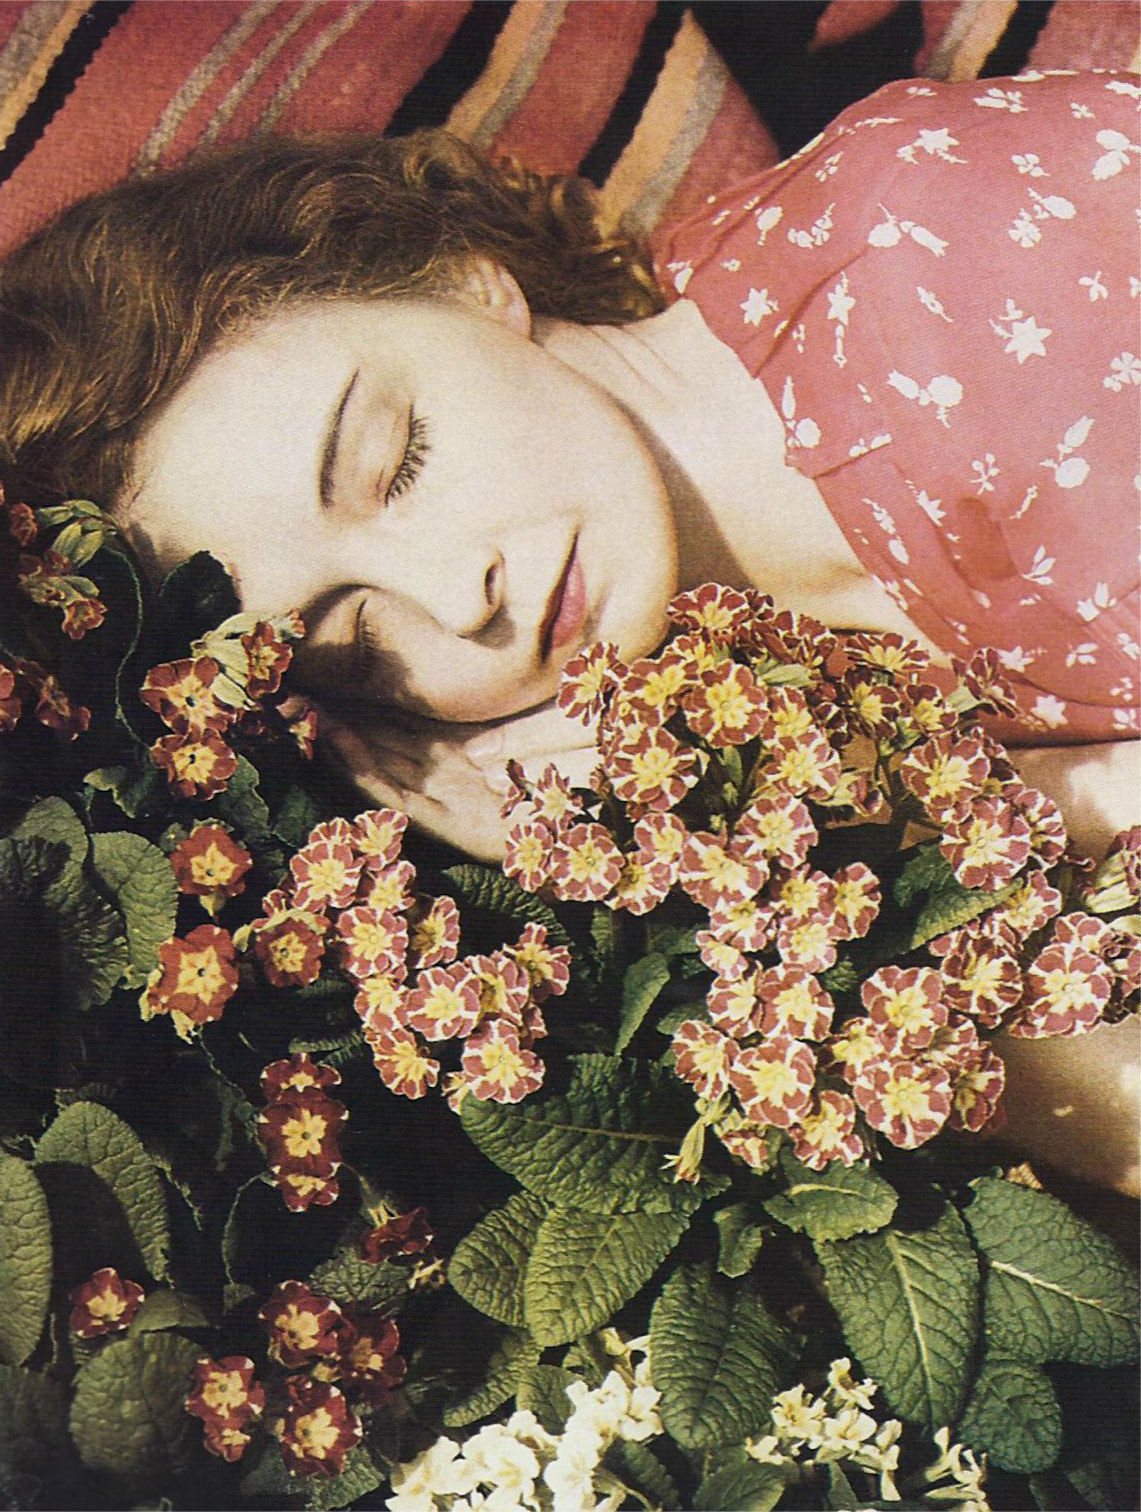 Lillian Gish Photographer Edward Steichen captured the actress in an early colour rendering for Vanity Fair's December 1932 issue